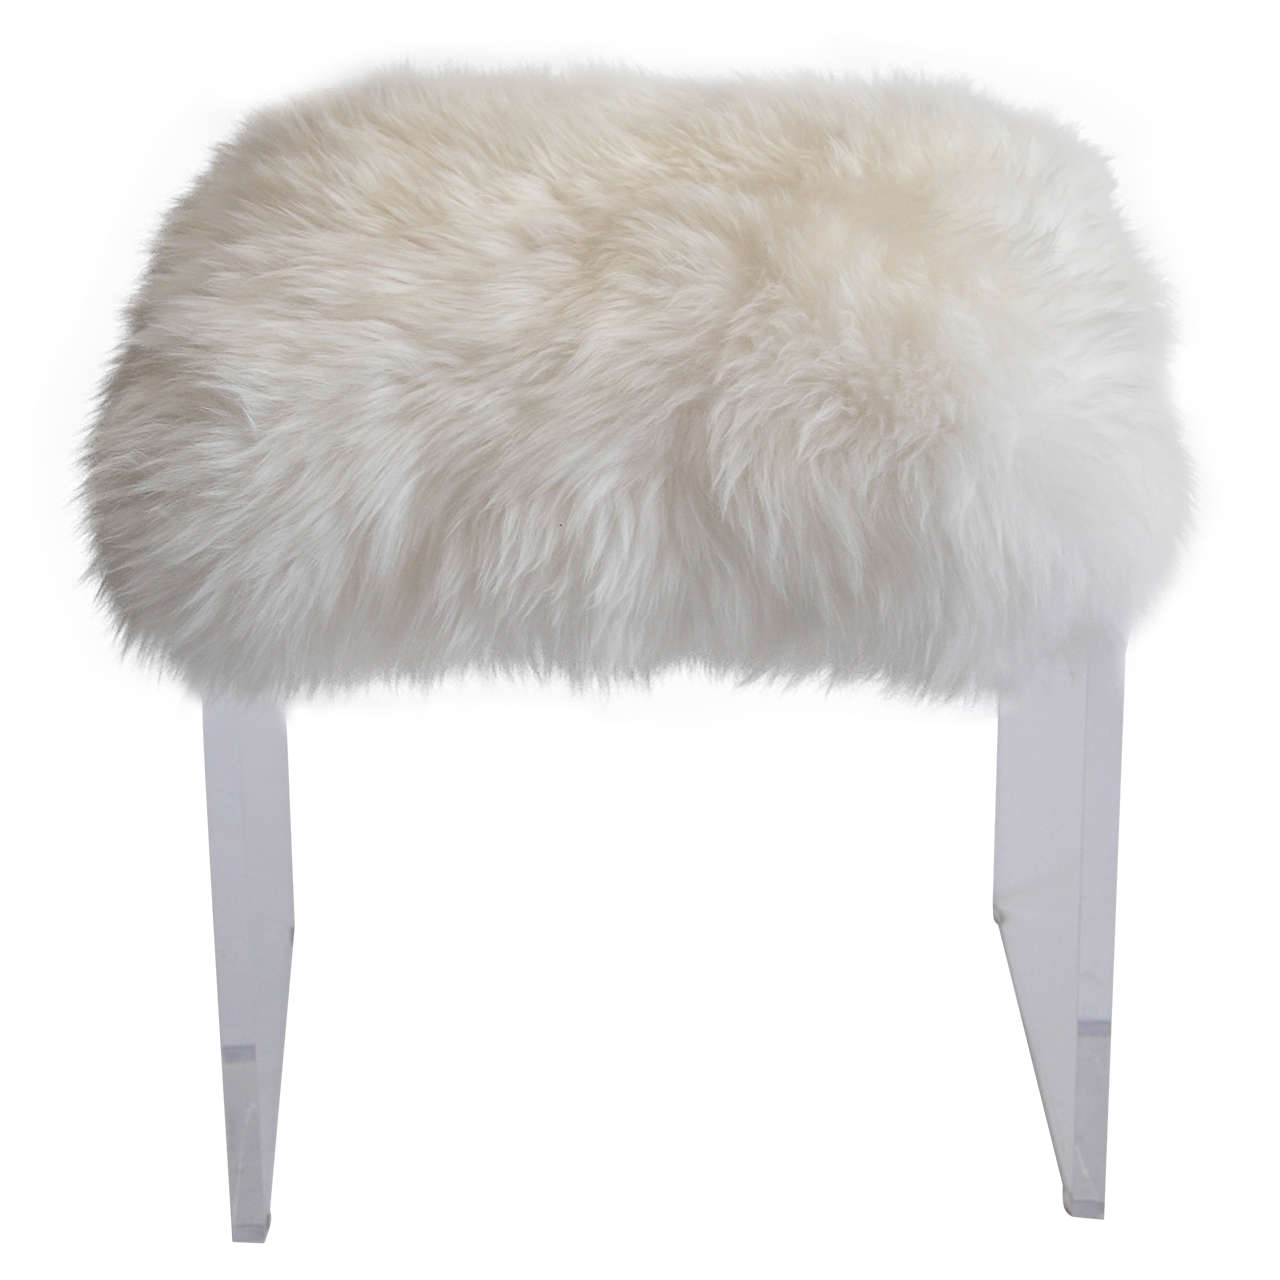 vanity chair white fur scandinavian design vintage lucite stool with faux topper at 1stdibs